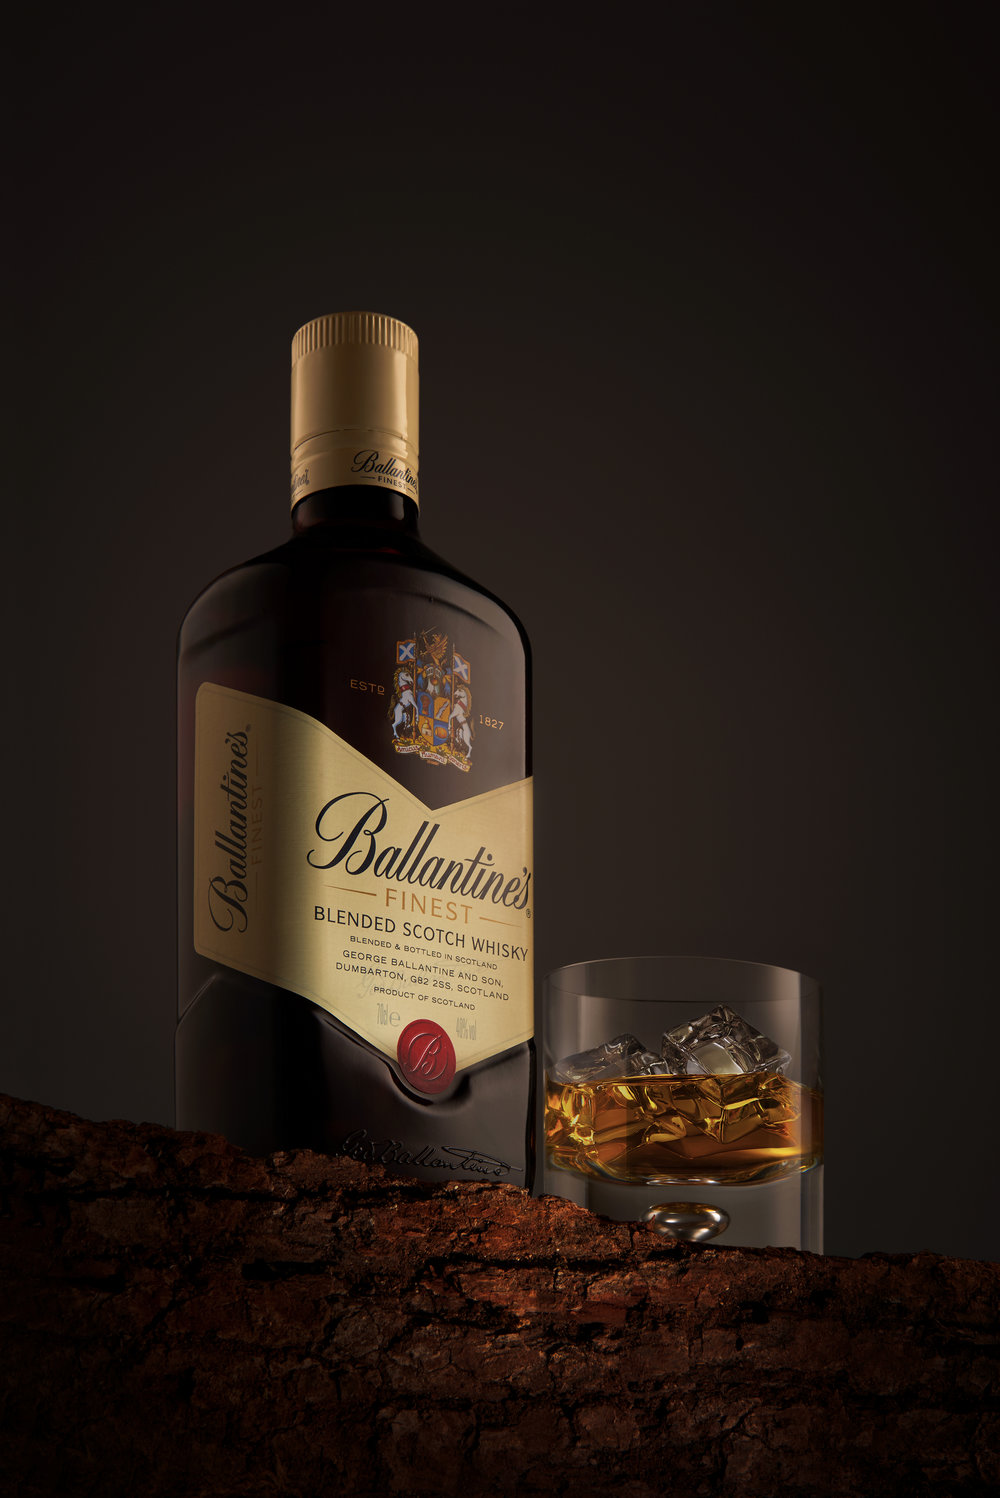 Ballantines Whisky Brown Bkg Flat 2.jpg